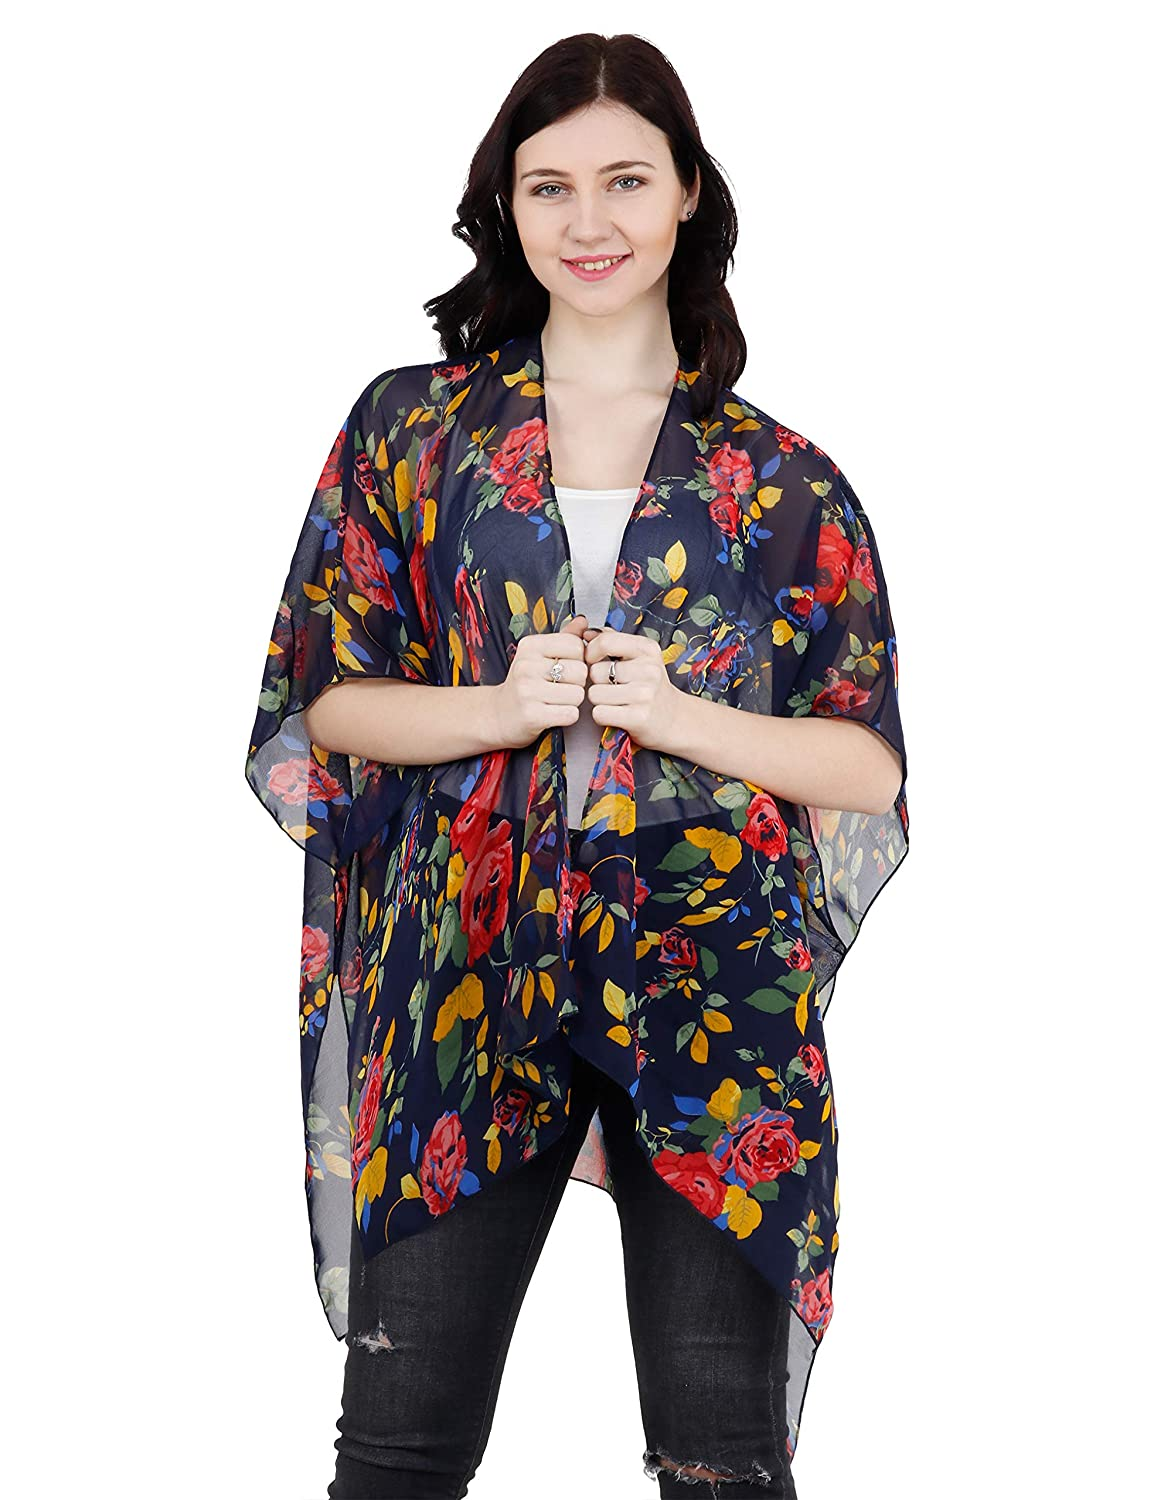 Navy bluee Flower TC Tanu Collections Women's Beach Cover up Swimsuit Kimono Cardigan with Bohemian Floral Print